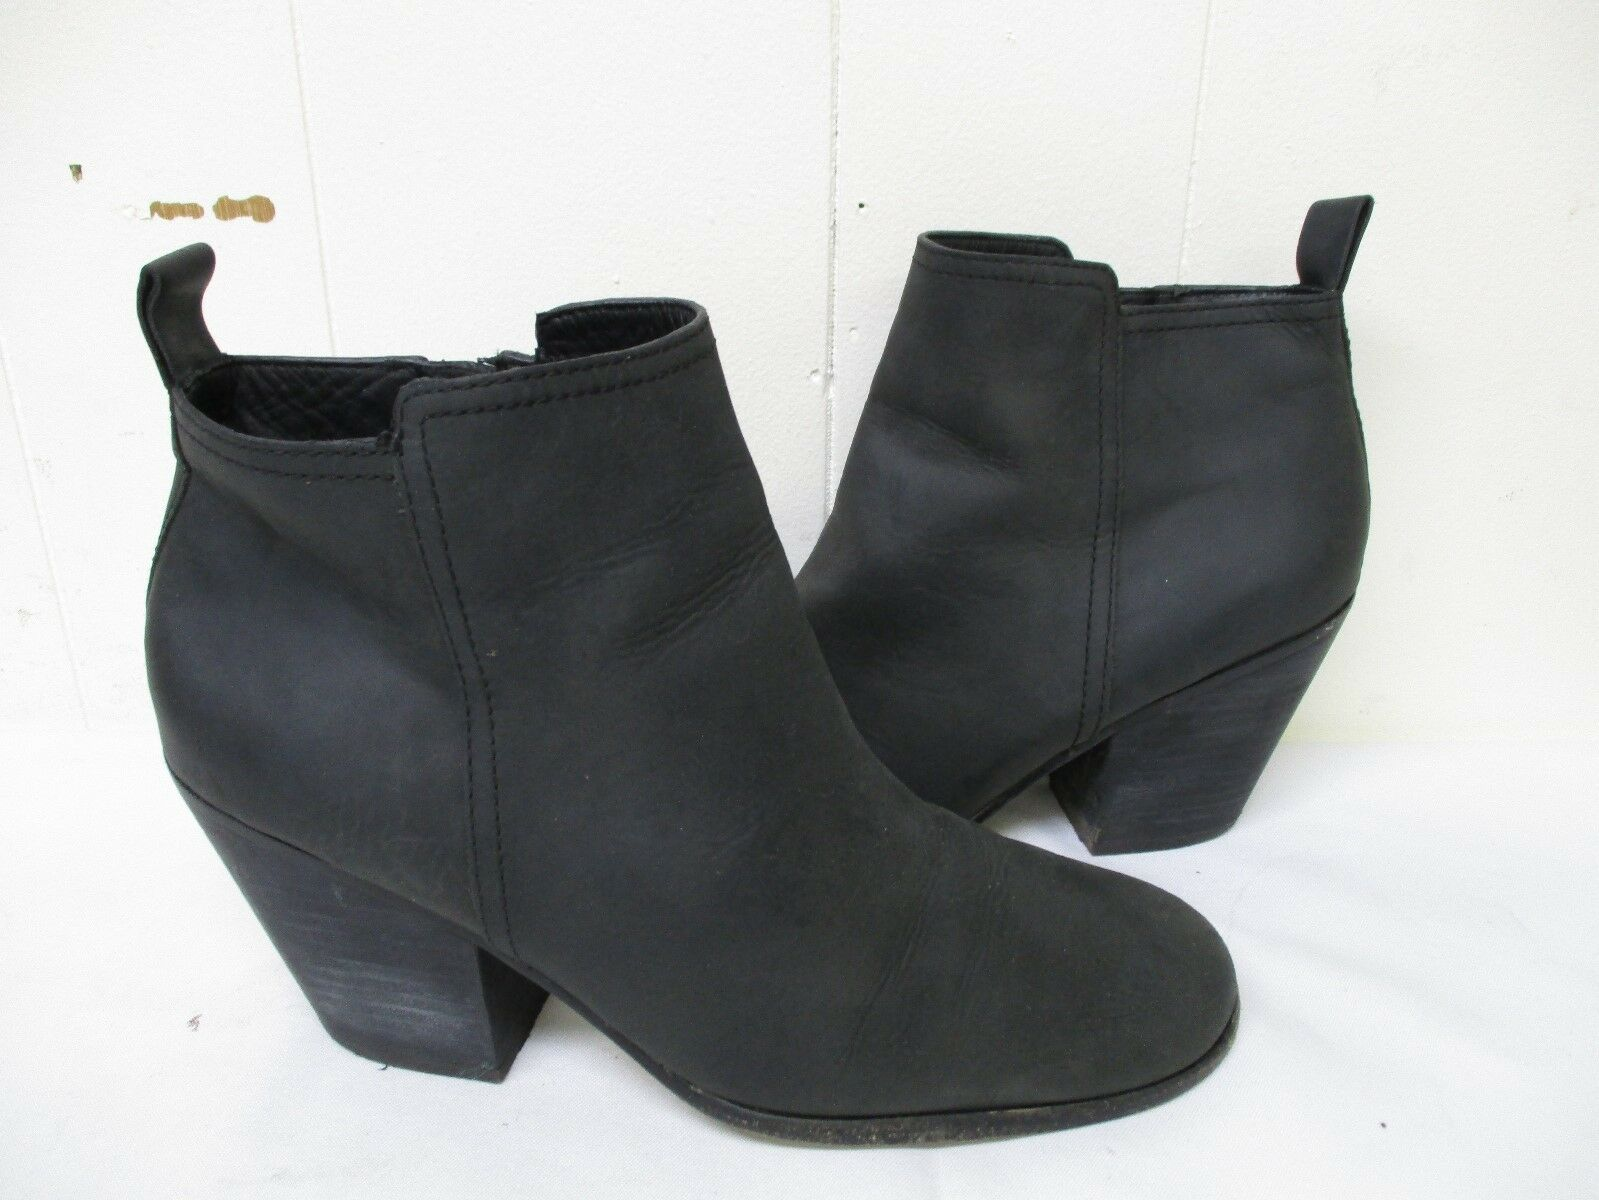 COLE HAAN  GRAND.OS Black Nubuck Leather Zip High Heel Ankle Boots Size 8.5 B